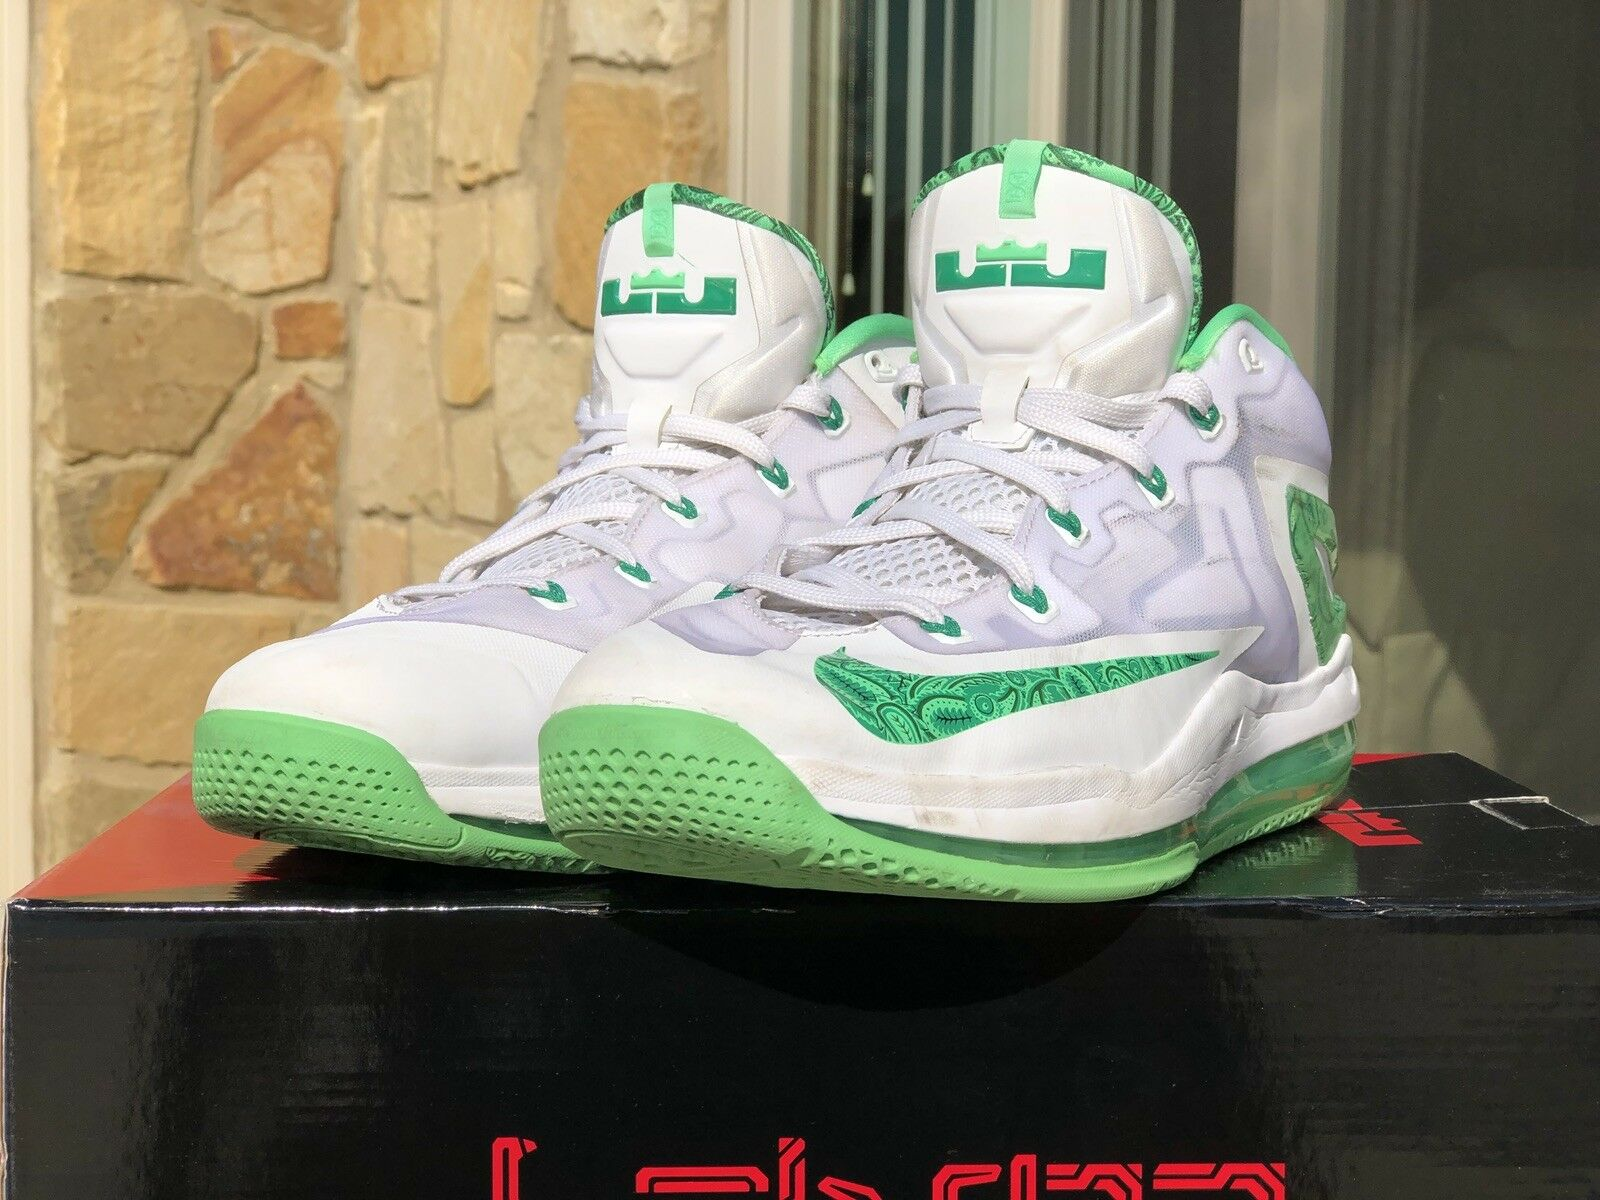 Pre-Owned Nike LEBRON XI 11 Low Easter White Green 642849-100 Men's Sz 13